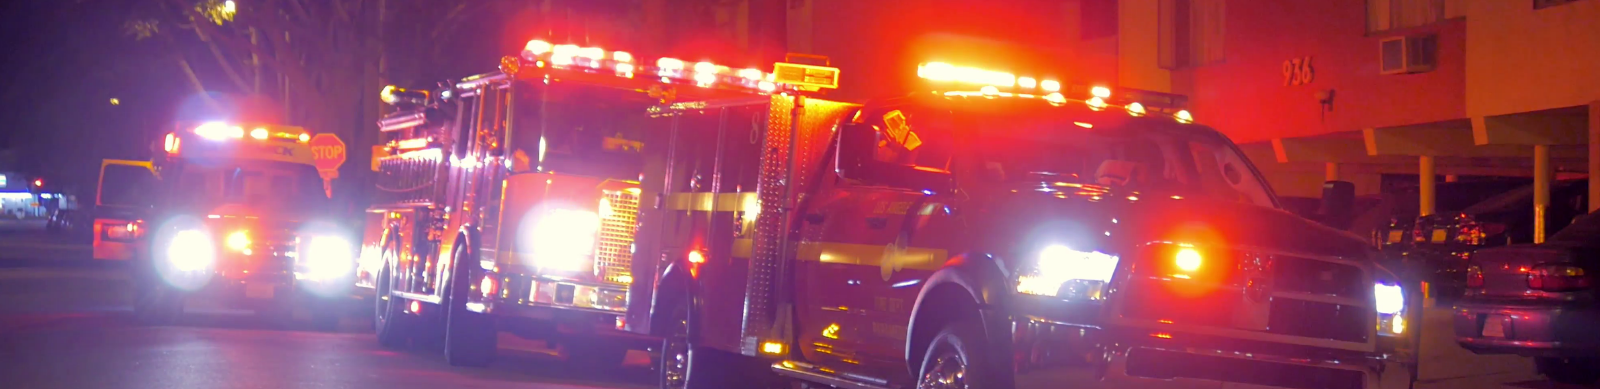 First Priority Emergency Vehicles: Parts